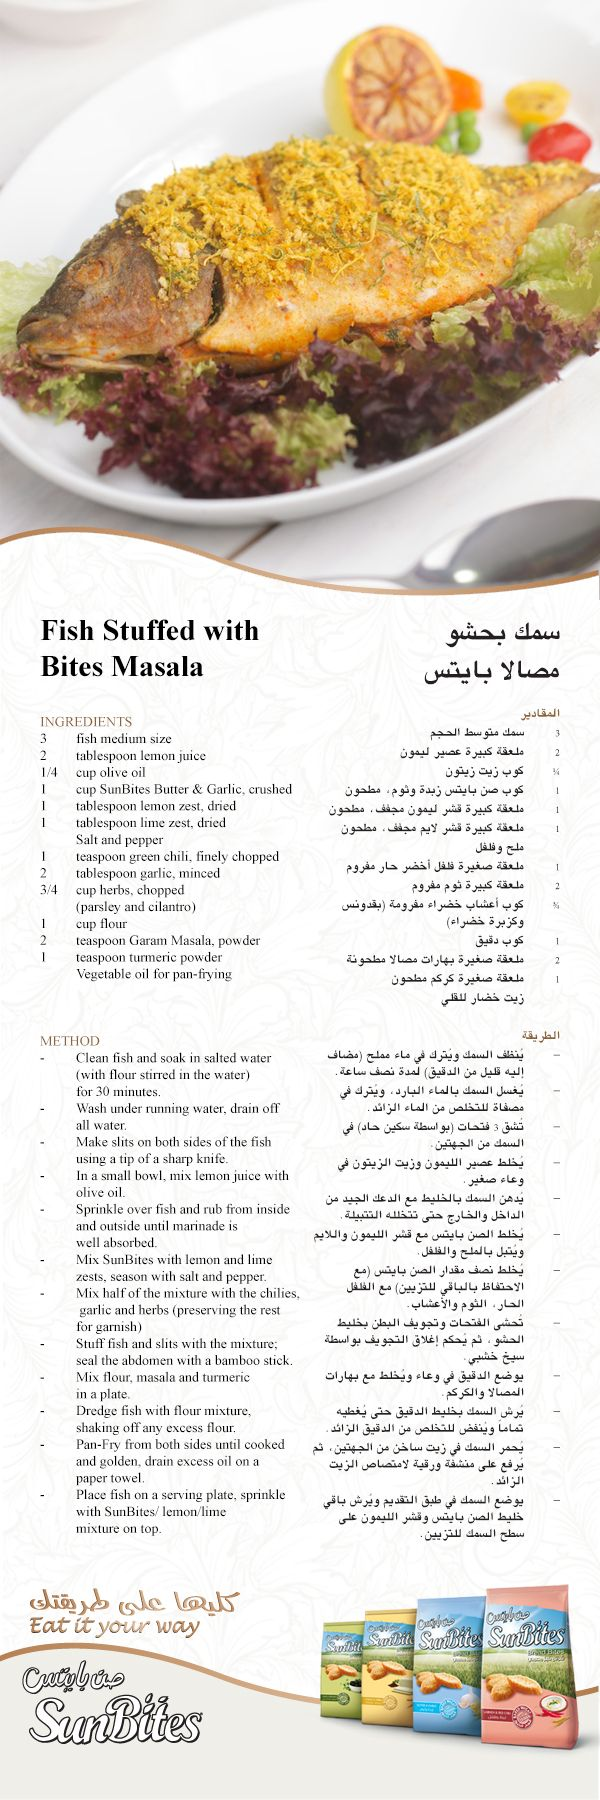 Sunbites Arabia Cooking Recipes Recipes Cooking